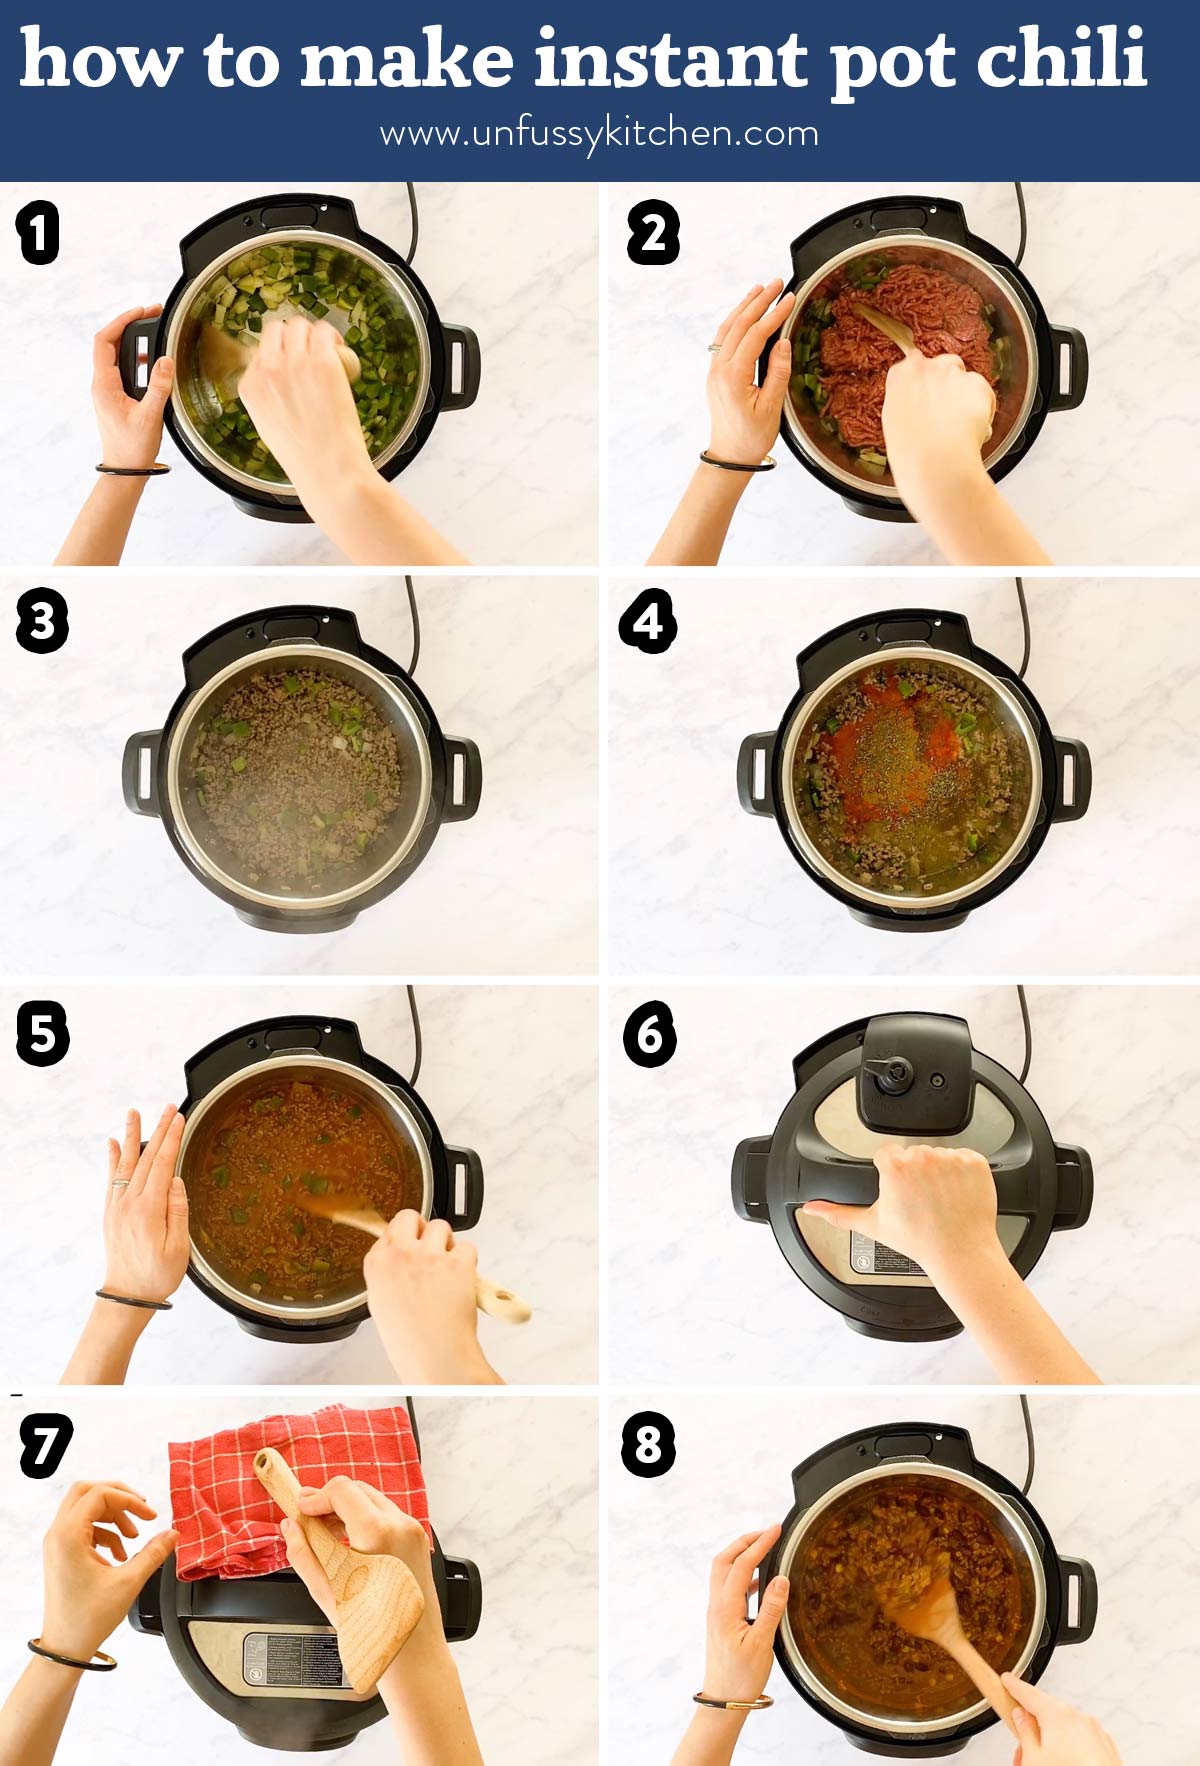 photo collage of steps to prepare instant pot chili